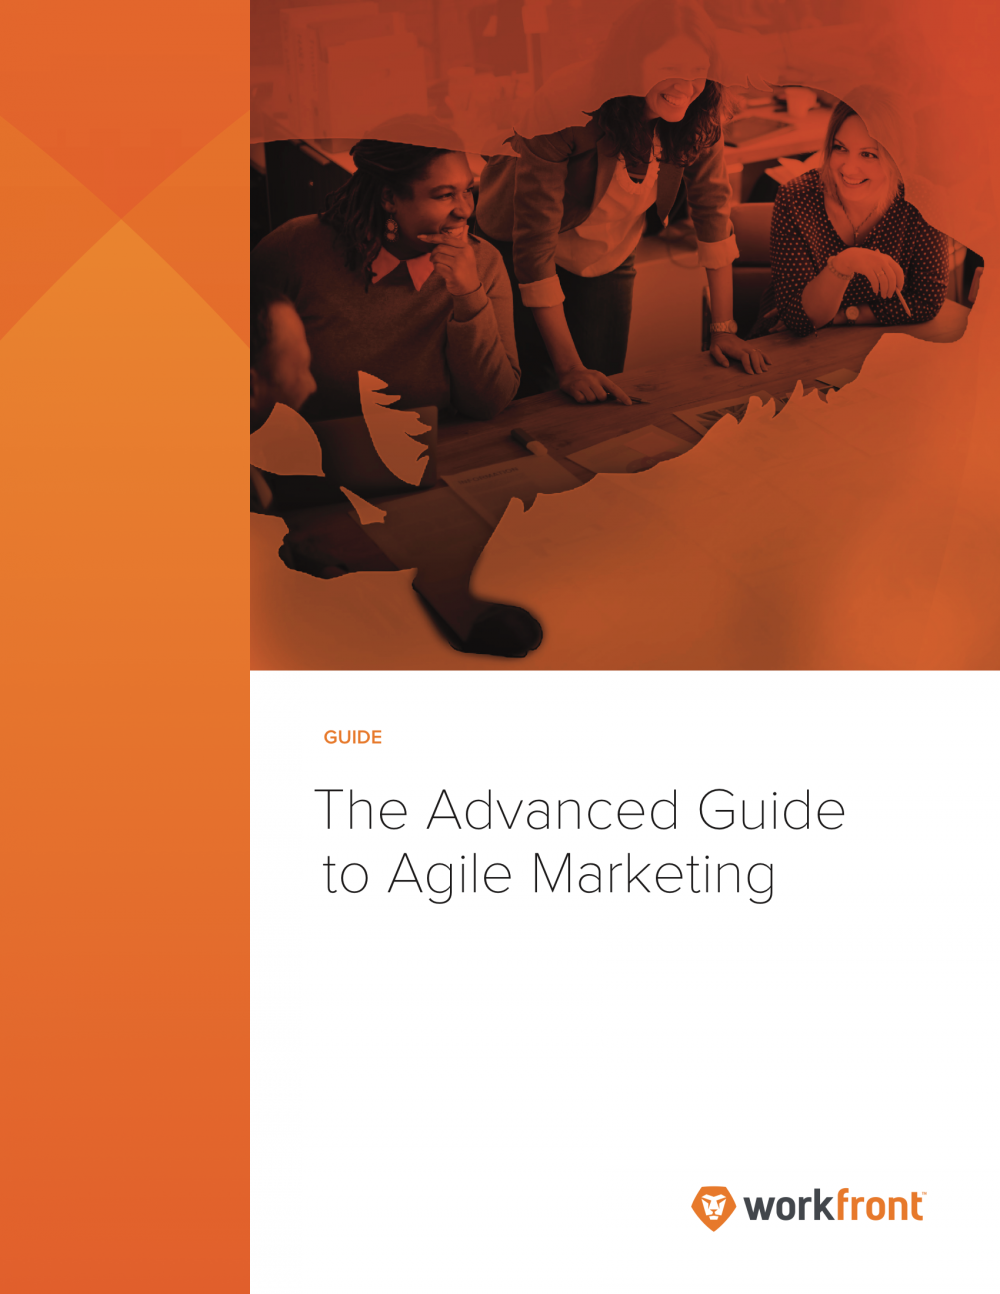 The Advanced Guide to Agile Marketing